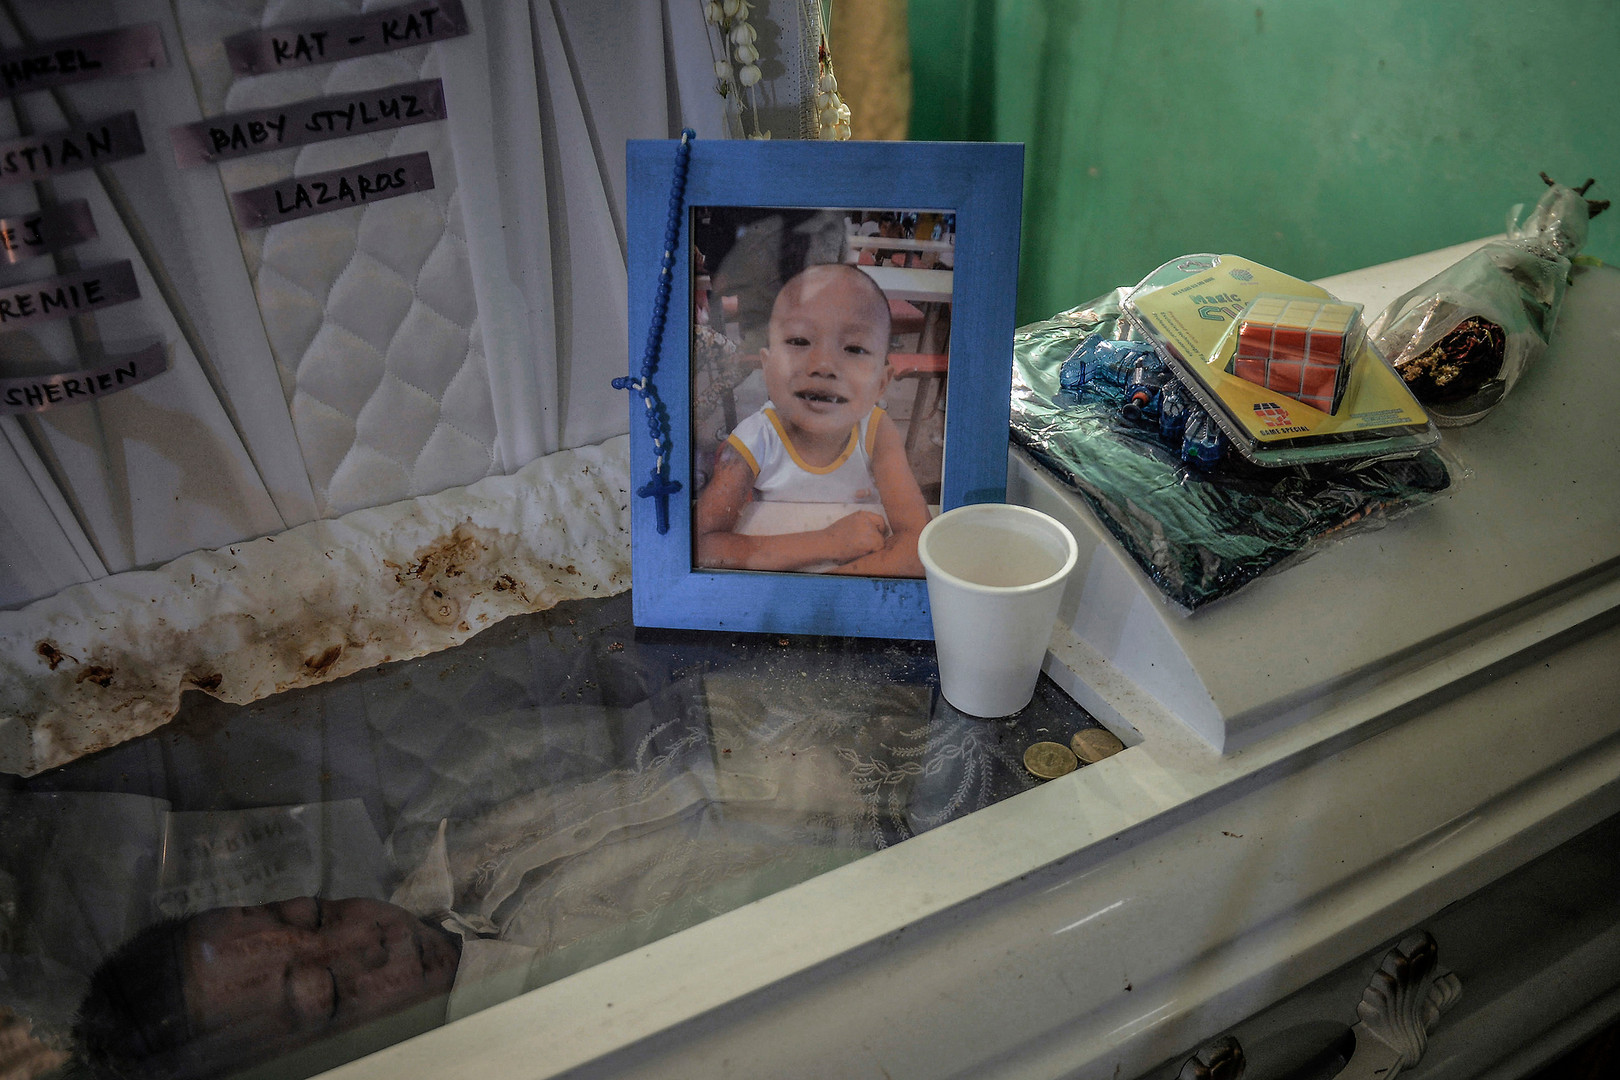 The body of 5-year-old Francis Manosca lies in a coffin during his funeral wake in Pasay, Philippines, December 20, 2016. Domingo Manosca and his 5-year-old son Francis was in their Pasay home when a gunman knocked on their door. Domingo stood up and peeped through a hole in the wall, the gunmen opened fire hitting him and his child Francis who was standing behind him. Domingo died on the spot while Francis passed away while being treated at the hospital.